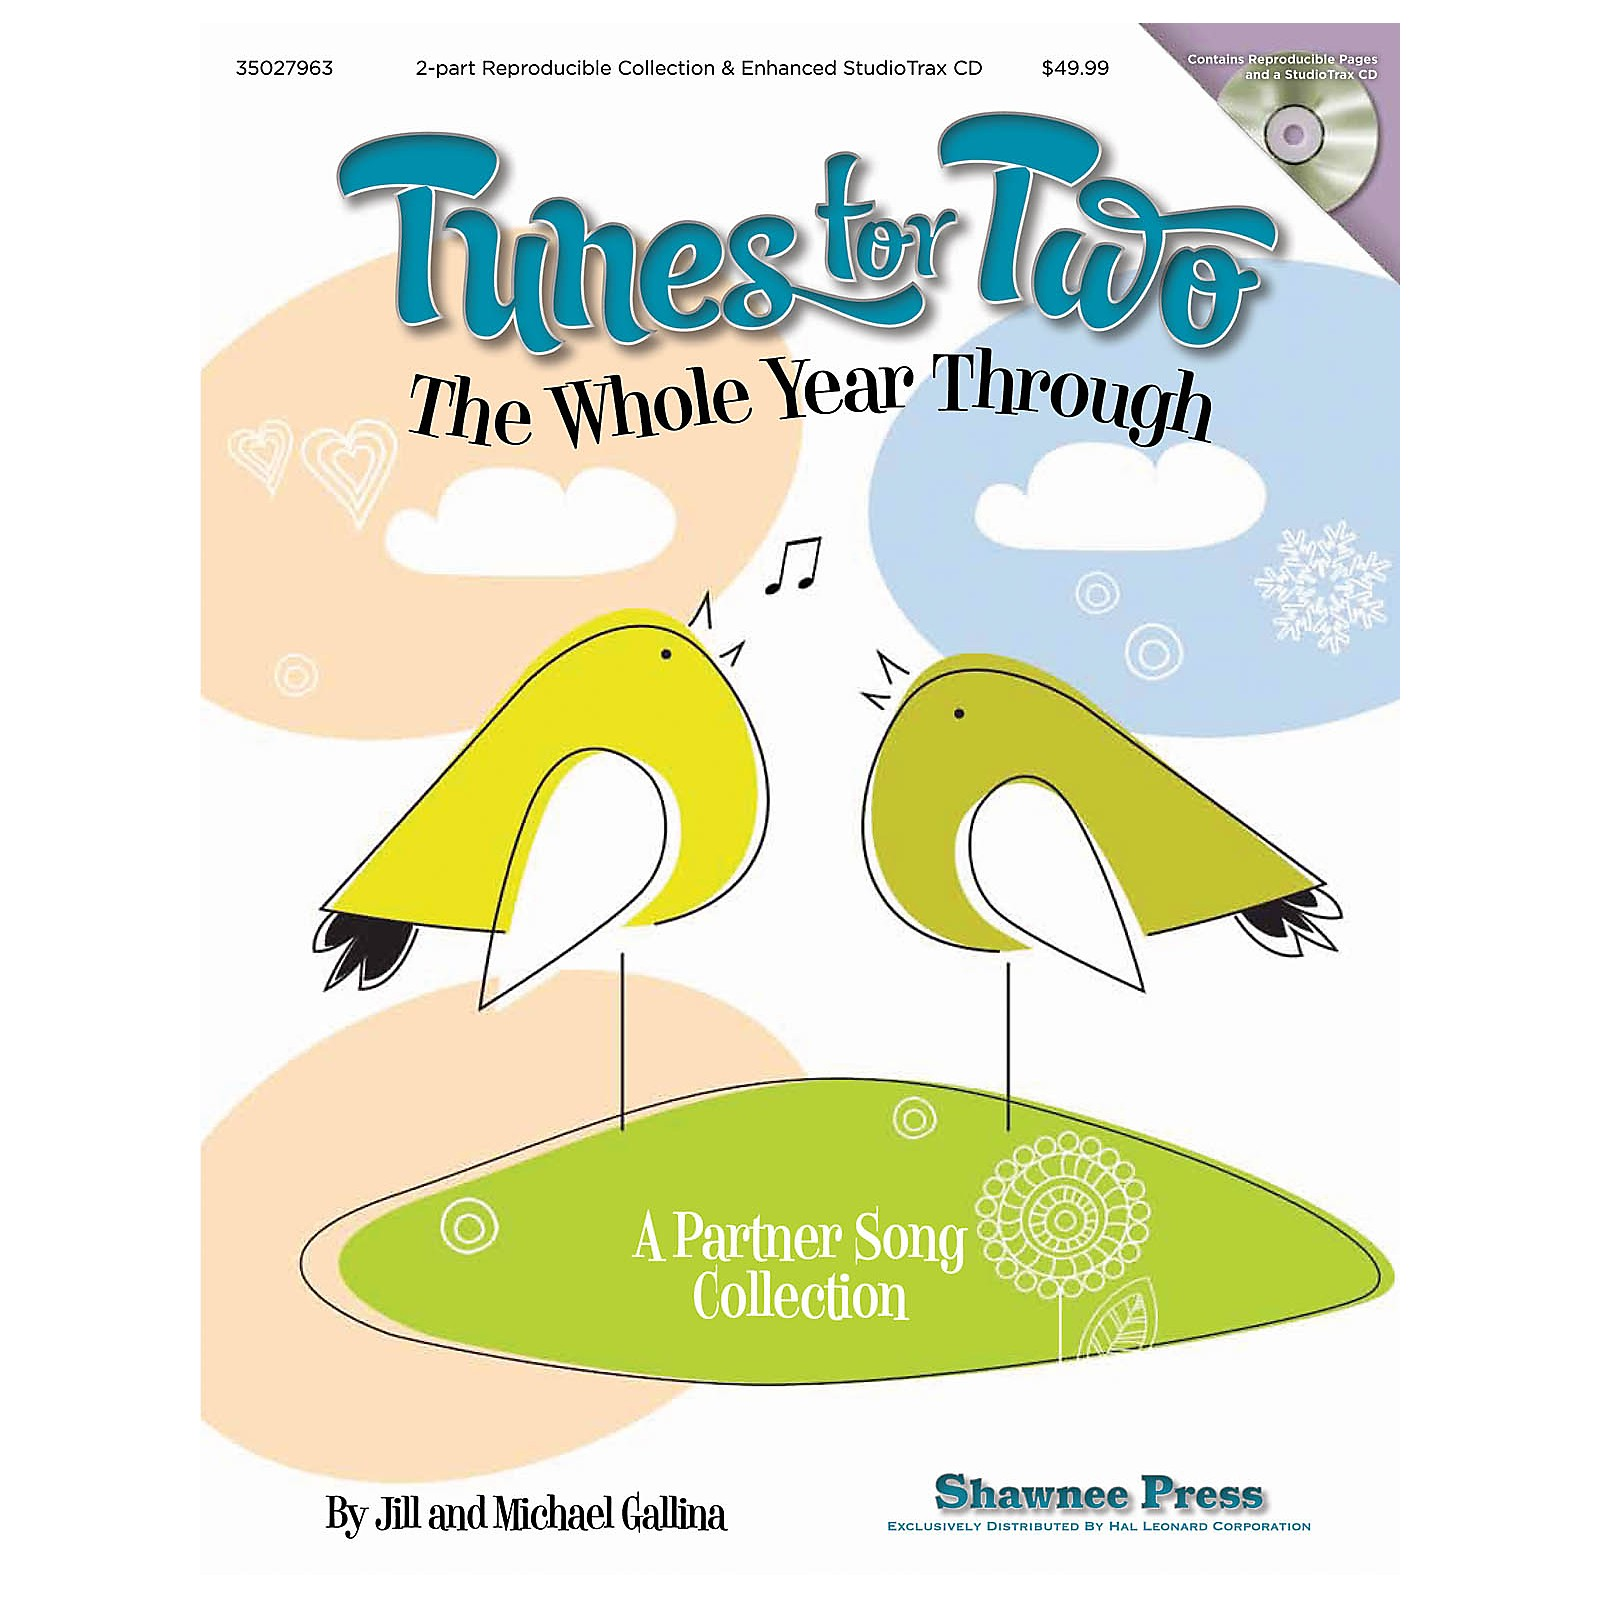 Shawnee Press Tunes for Two the Whole Year Through (A Partner Song Collection) 2-Part Book and CD by Jill Gallina